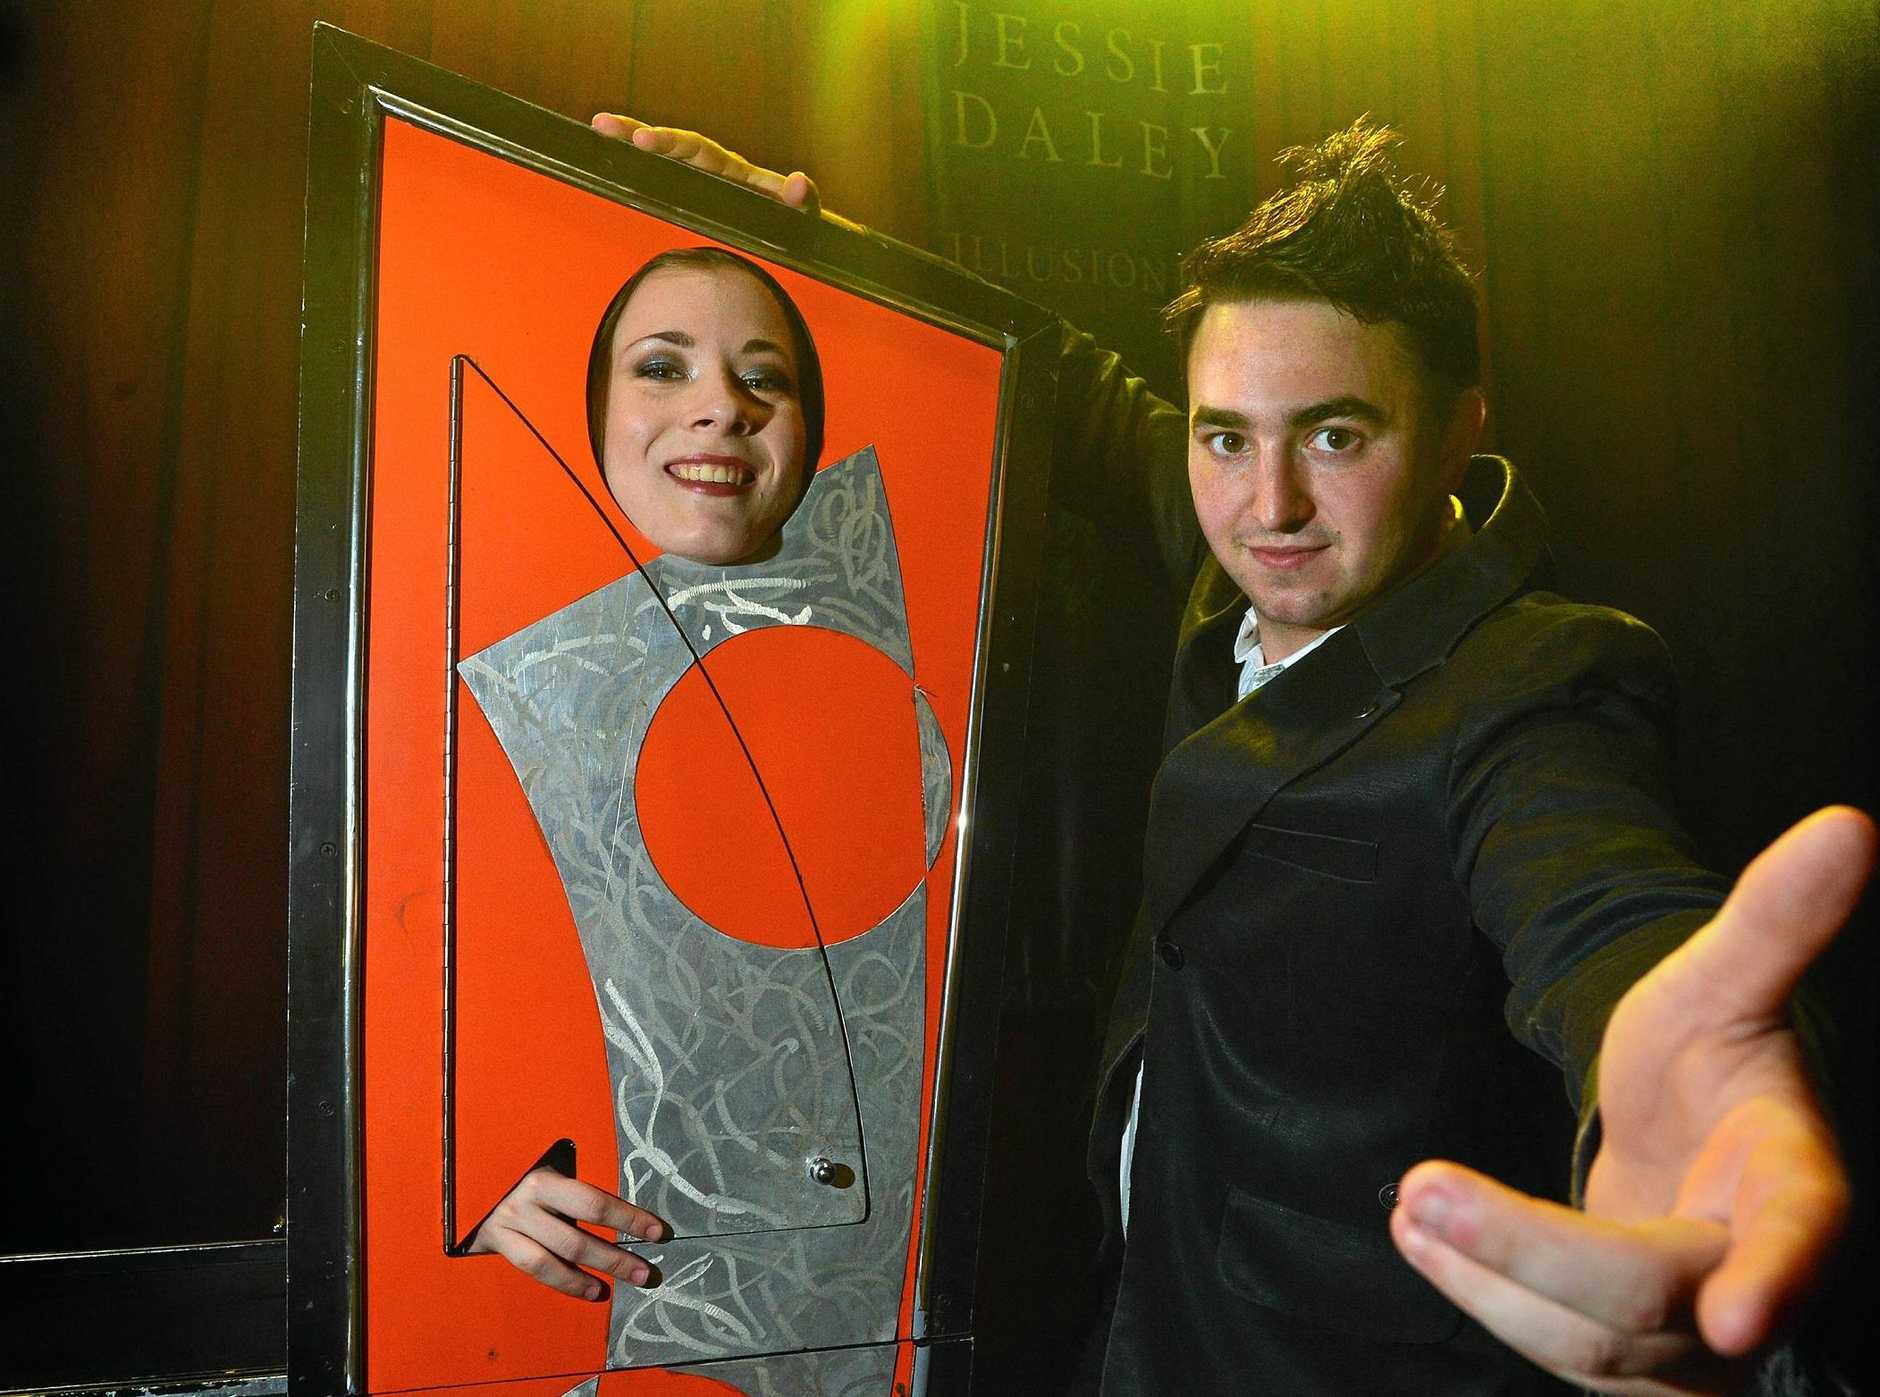 BE AMAZED: Illusionist Jessie Daley creates his magic at Aussie World with Aimee Percival.